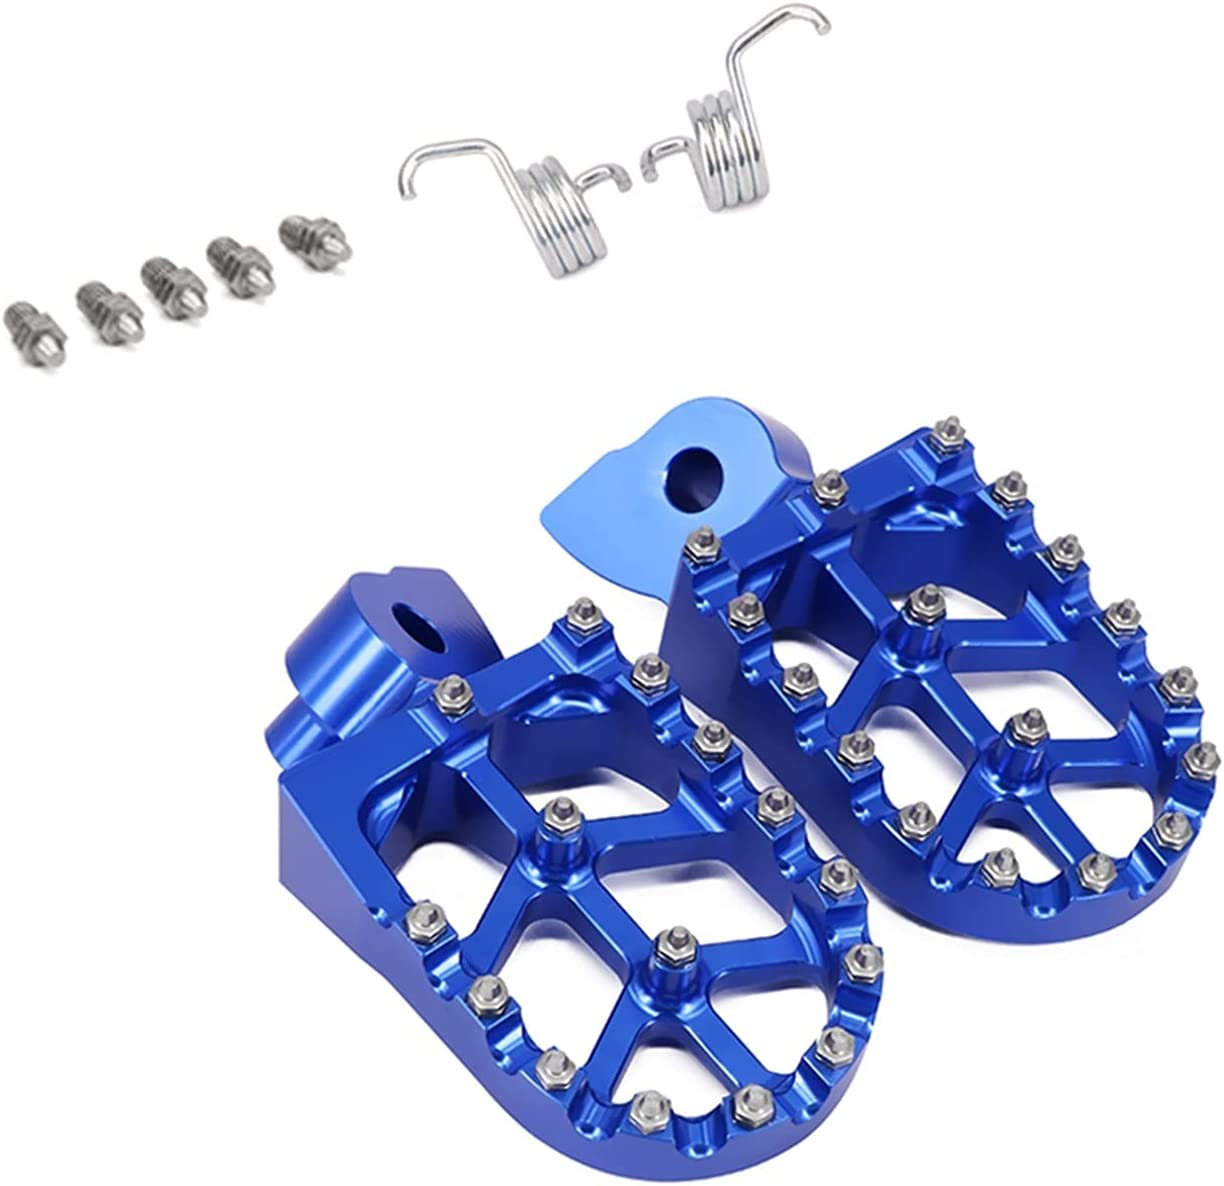 ZDSM Footrests for Y-AMAHA WR250F WR450F YZ250 YZ85 YZ125 YZ125X excellence 25% OFF